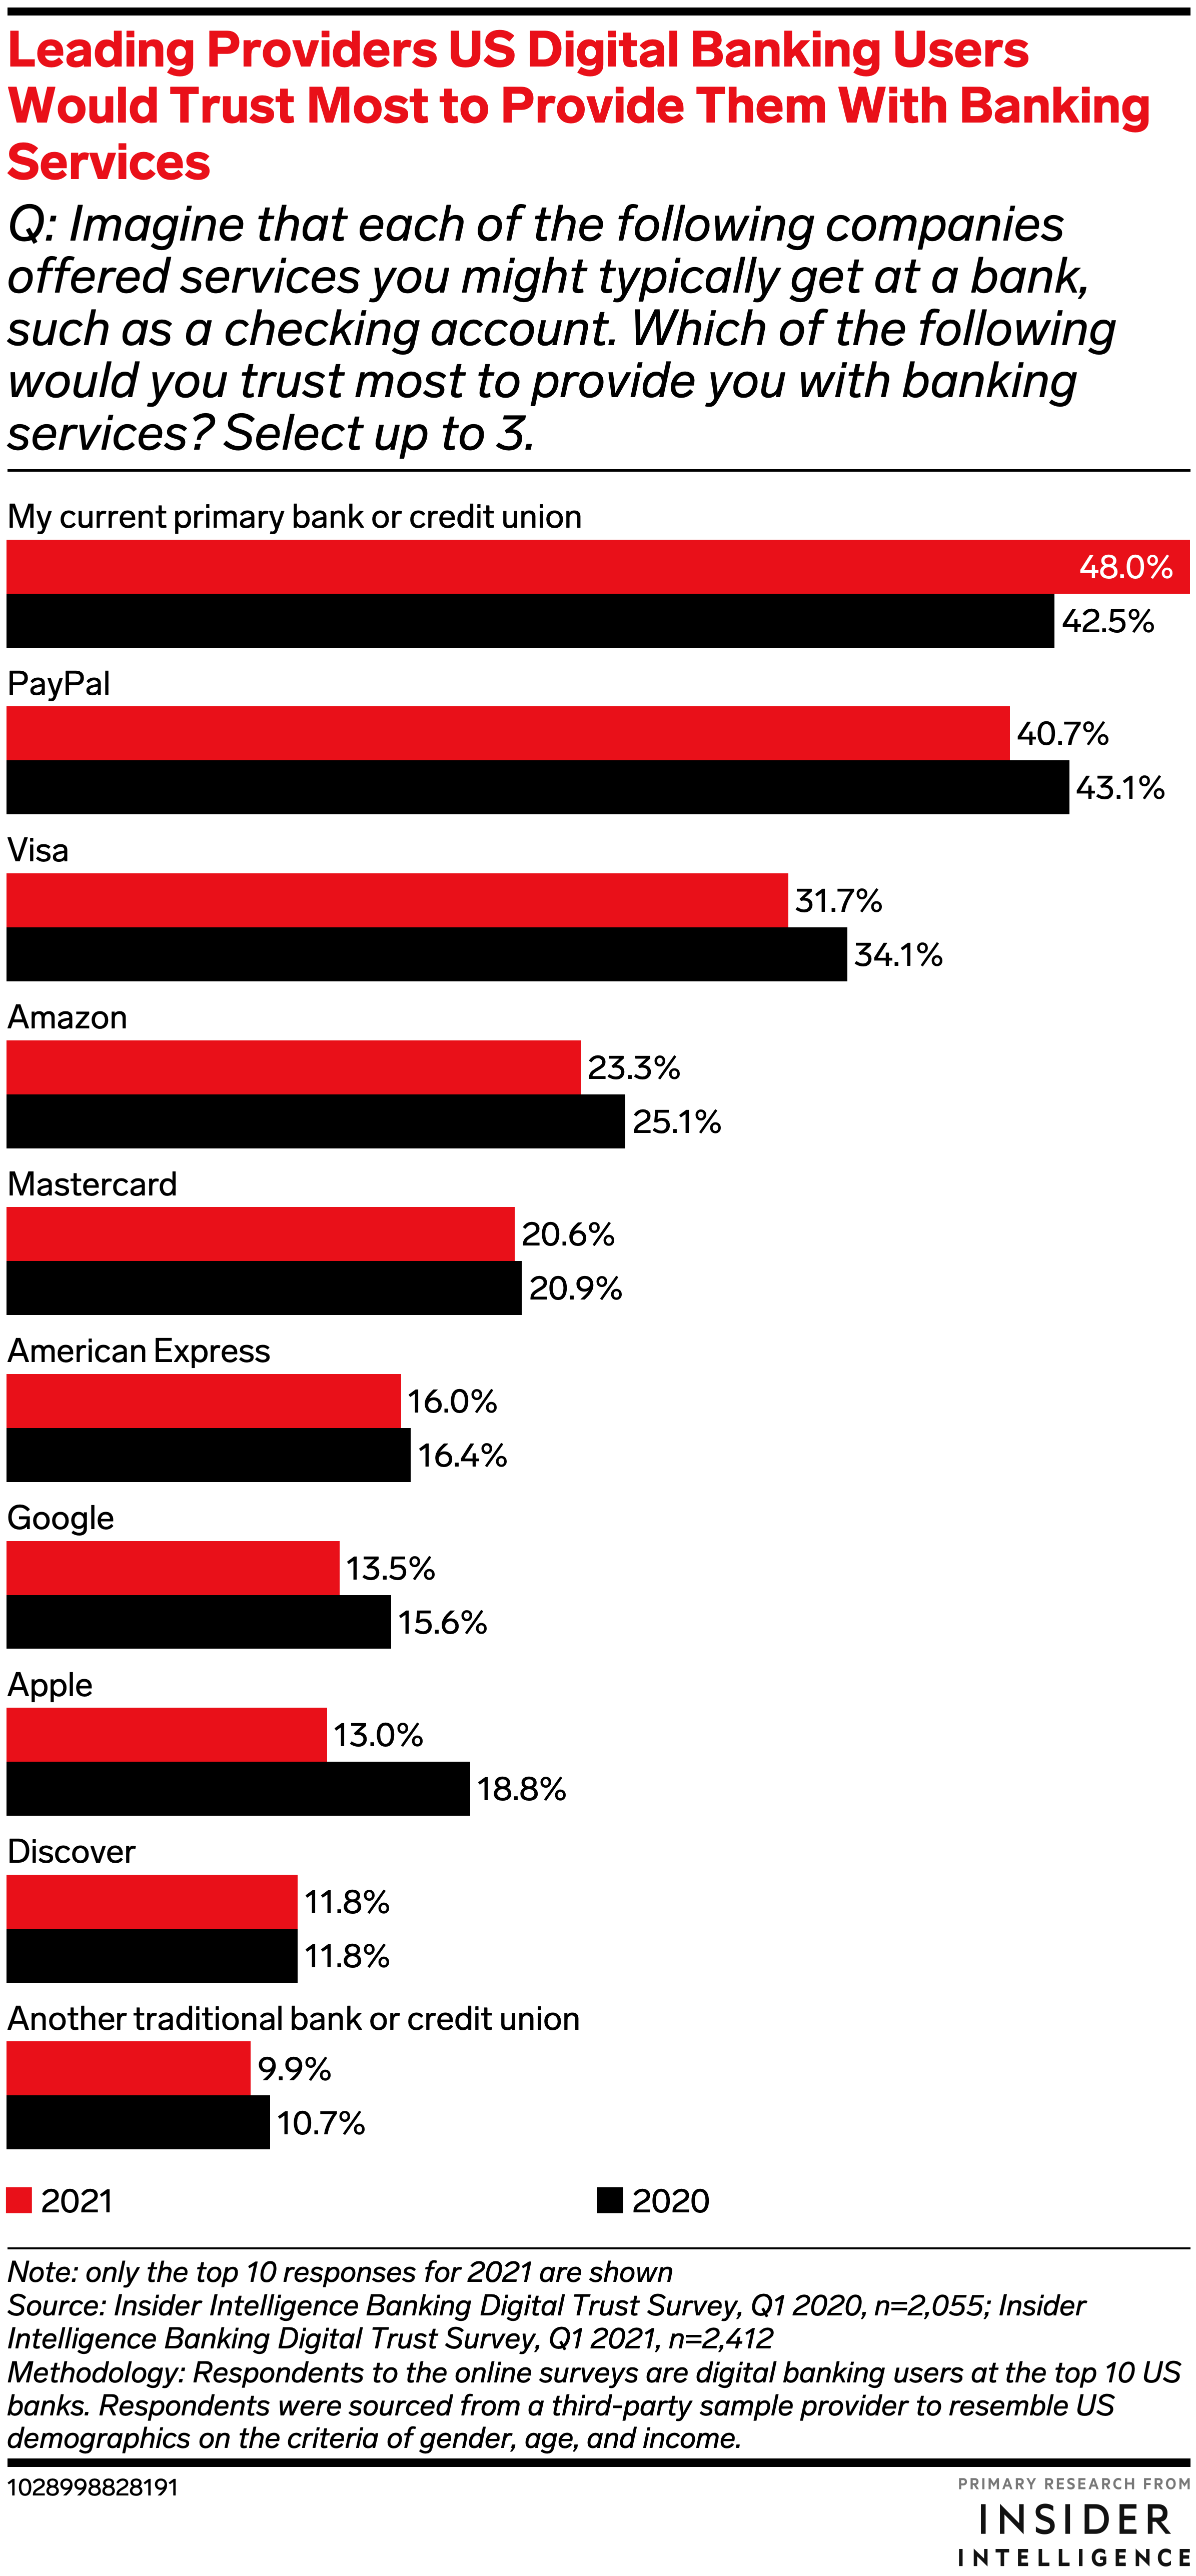 Leading Providers US Digital Banking Users Would Trust Most to Provide Them With Banking Services